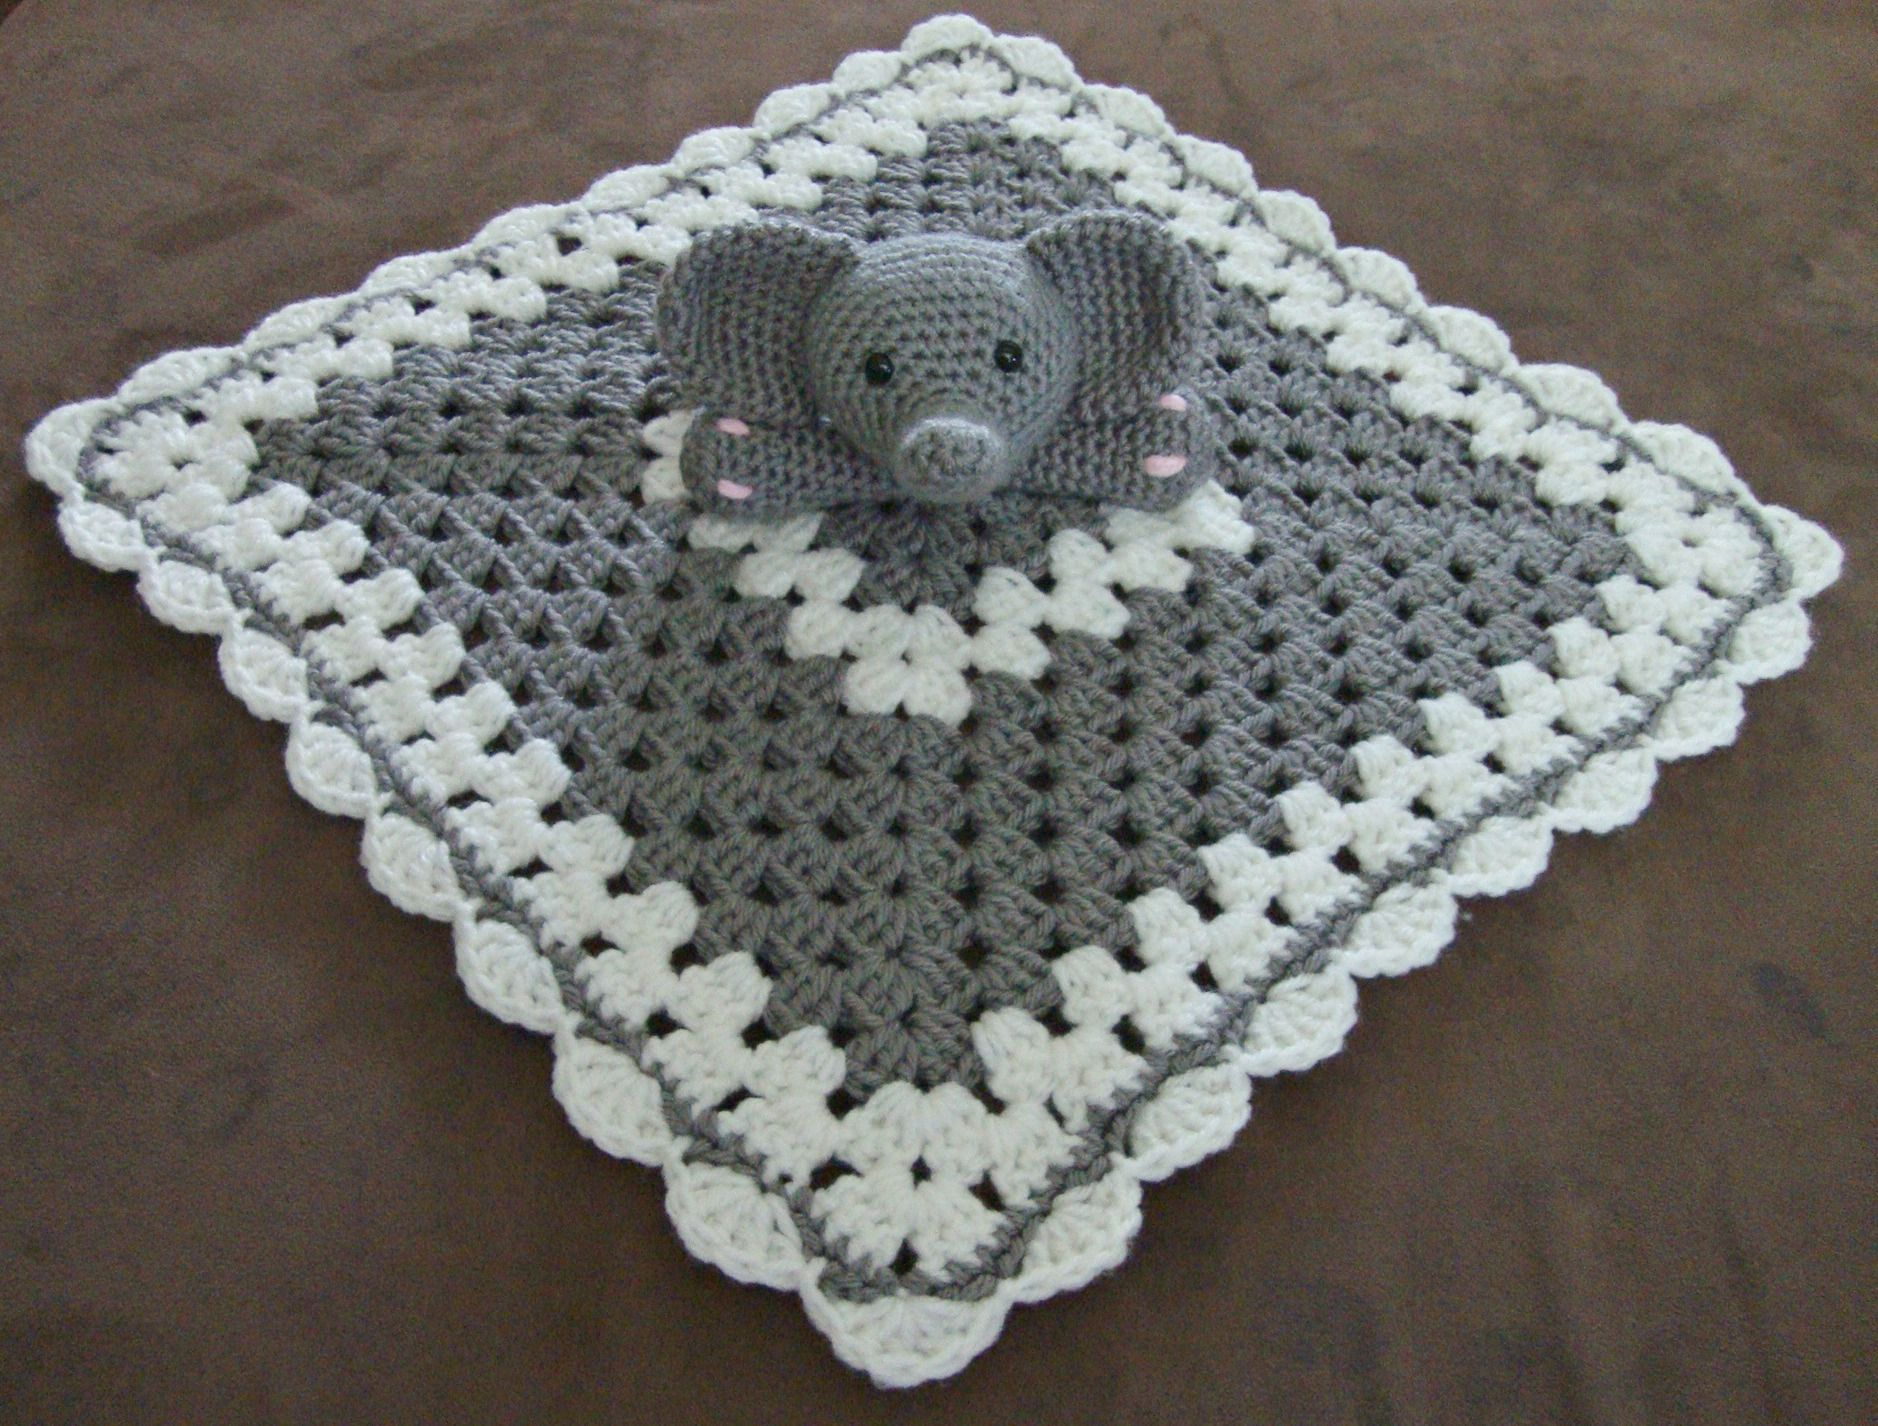 Crochet Pattern For Elephant Blanket : Crochet elephant lovey/security blanket LOVEY BLANKETS ...